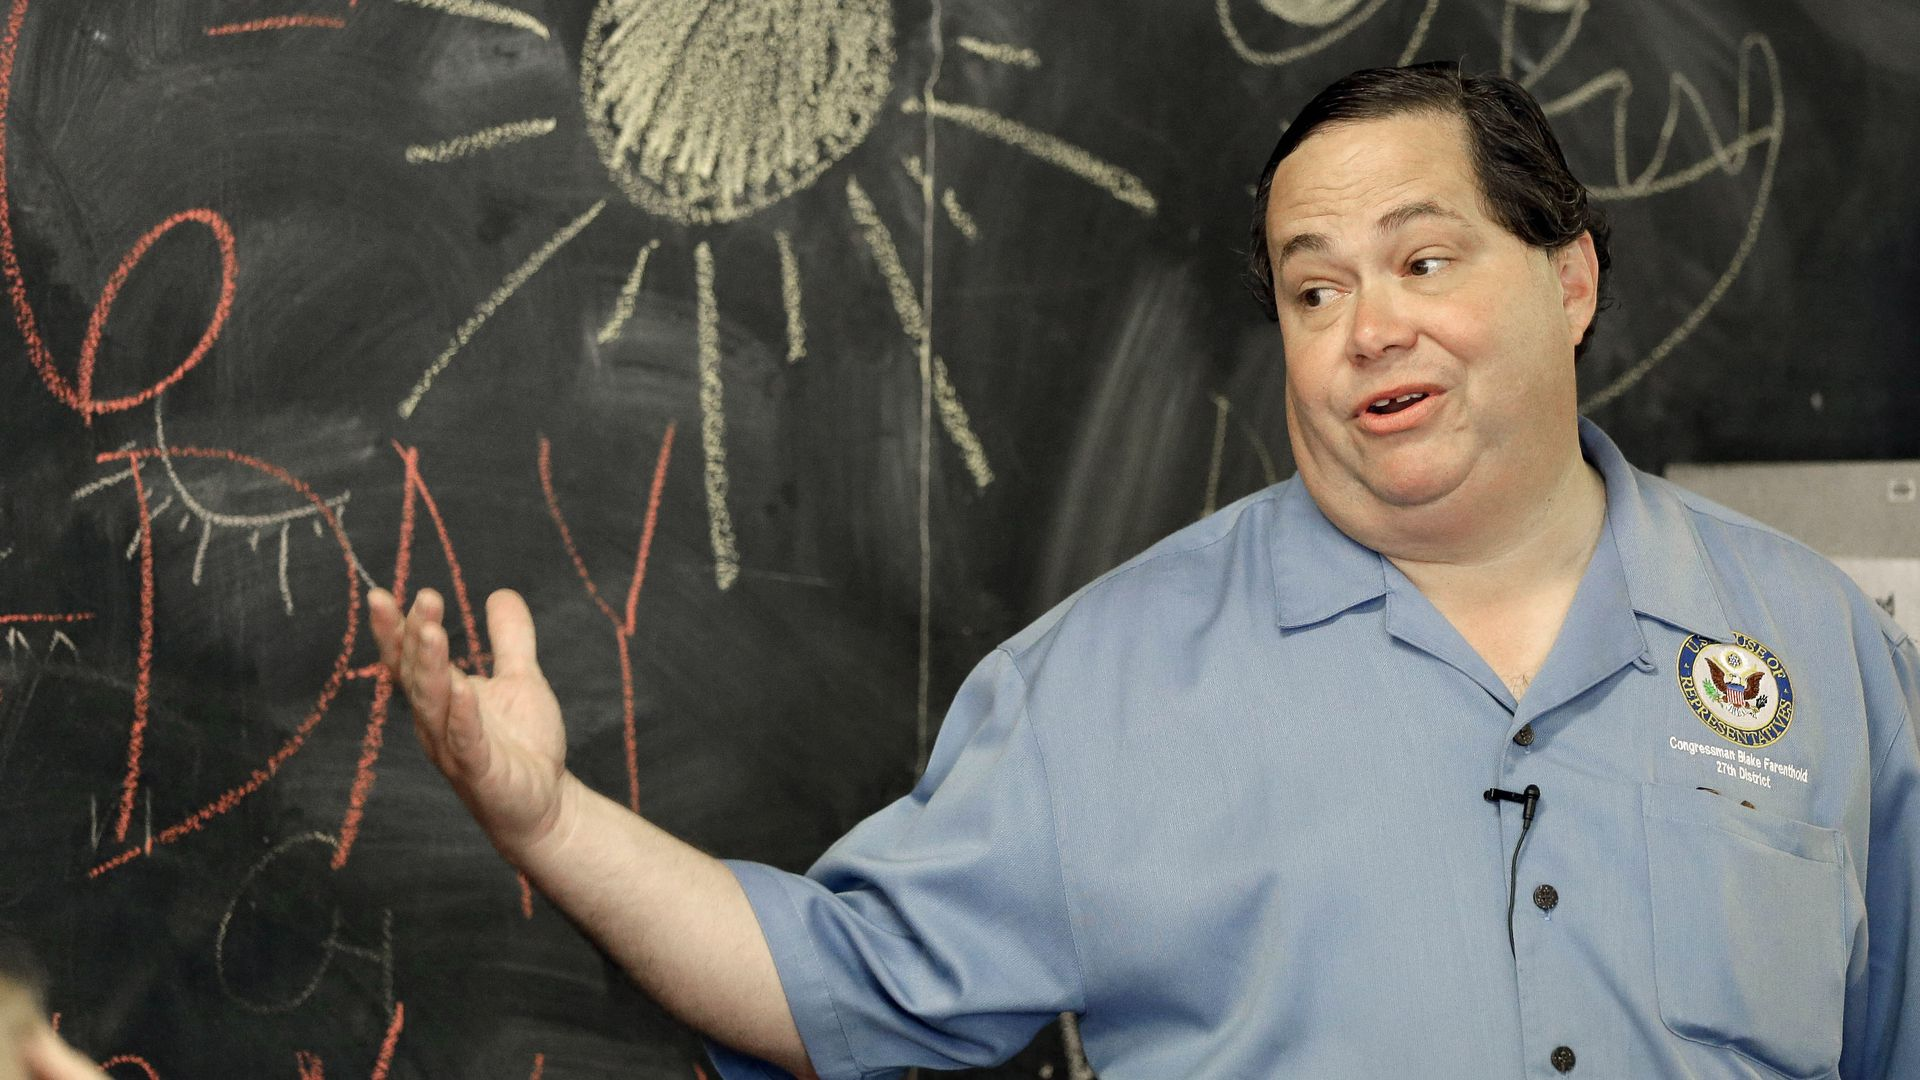 Rep. Blake Farenthold in front of a chalkboard with a yellow sun drawn on it with chalk.